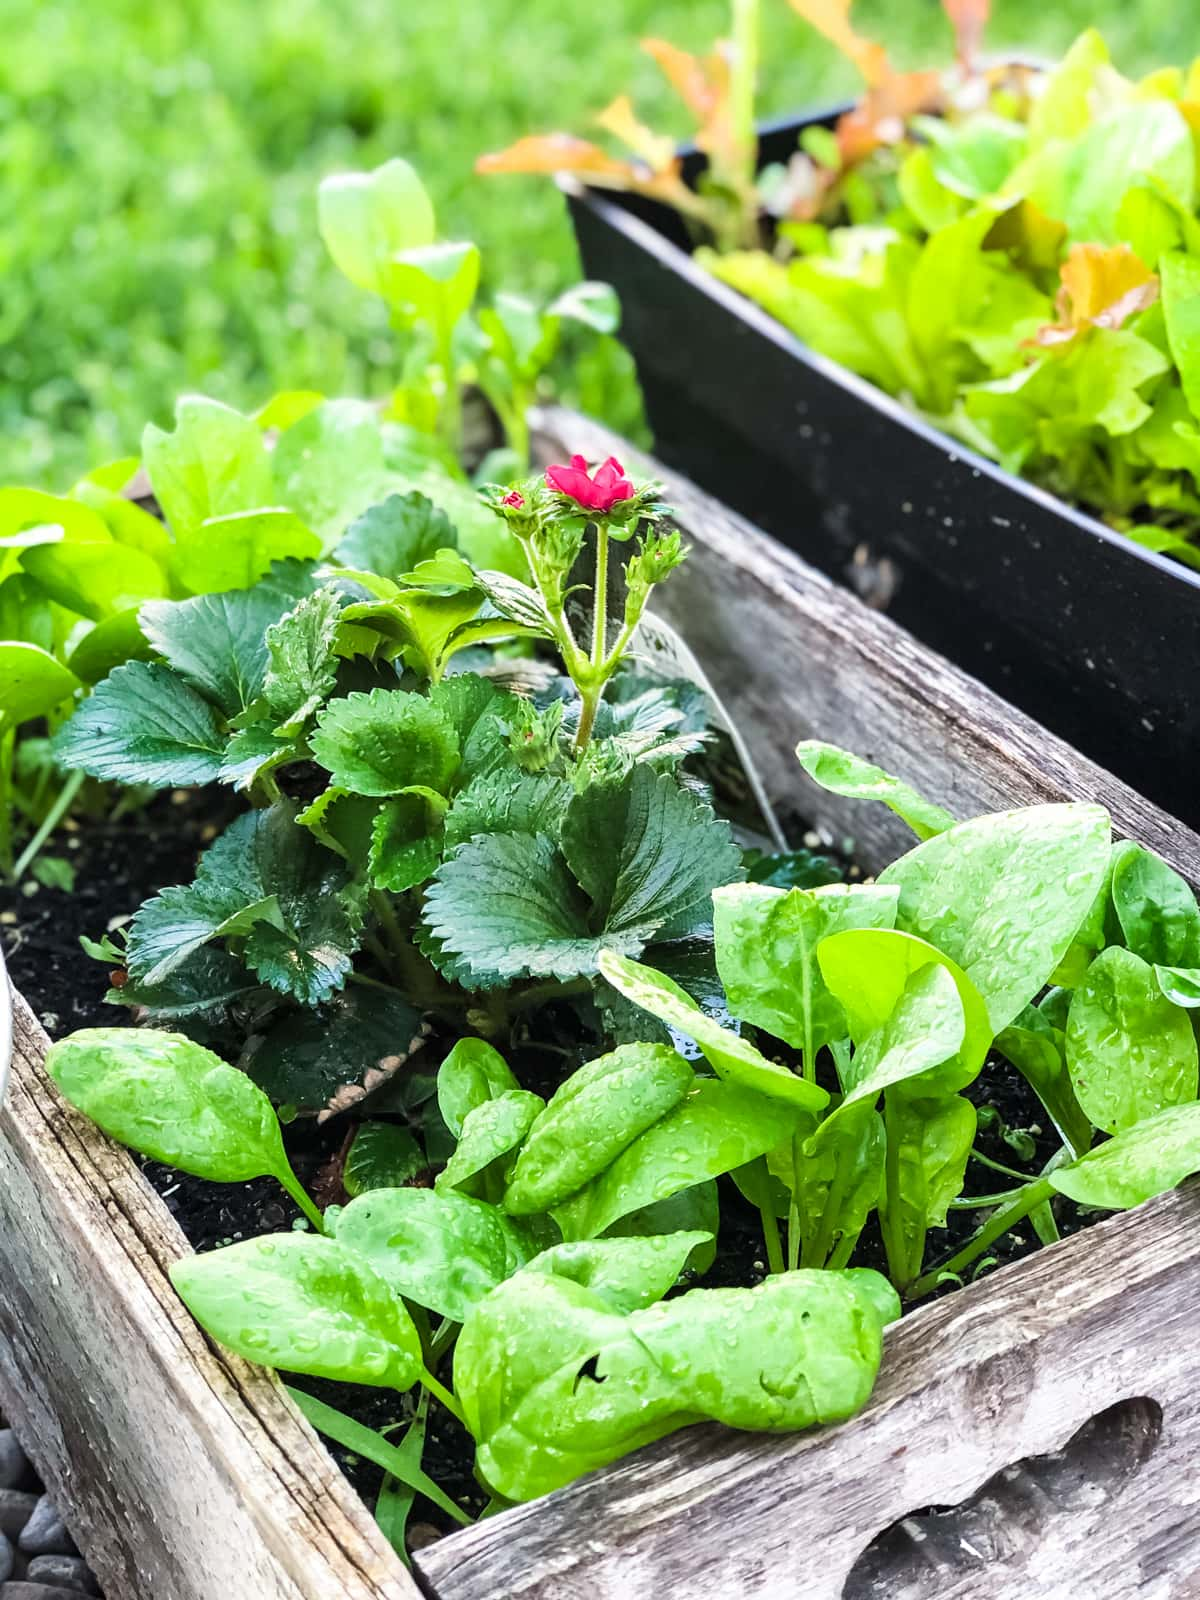 a wooden box filled with strawberries and spinach